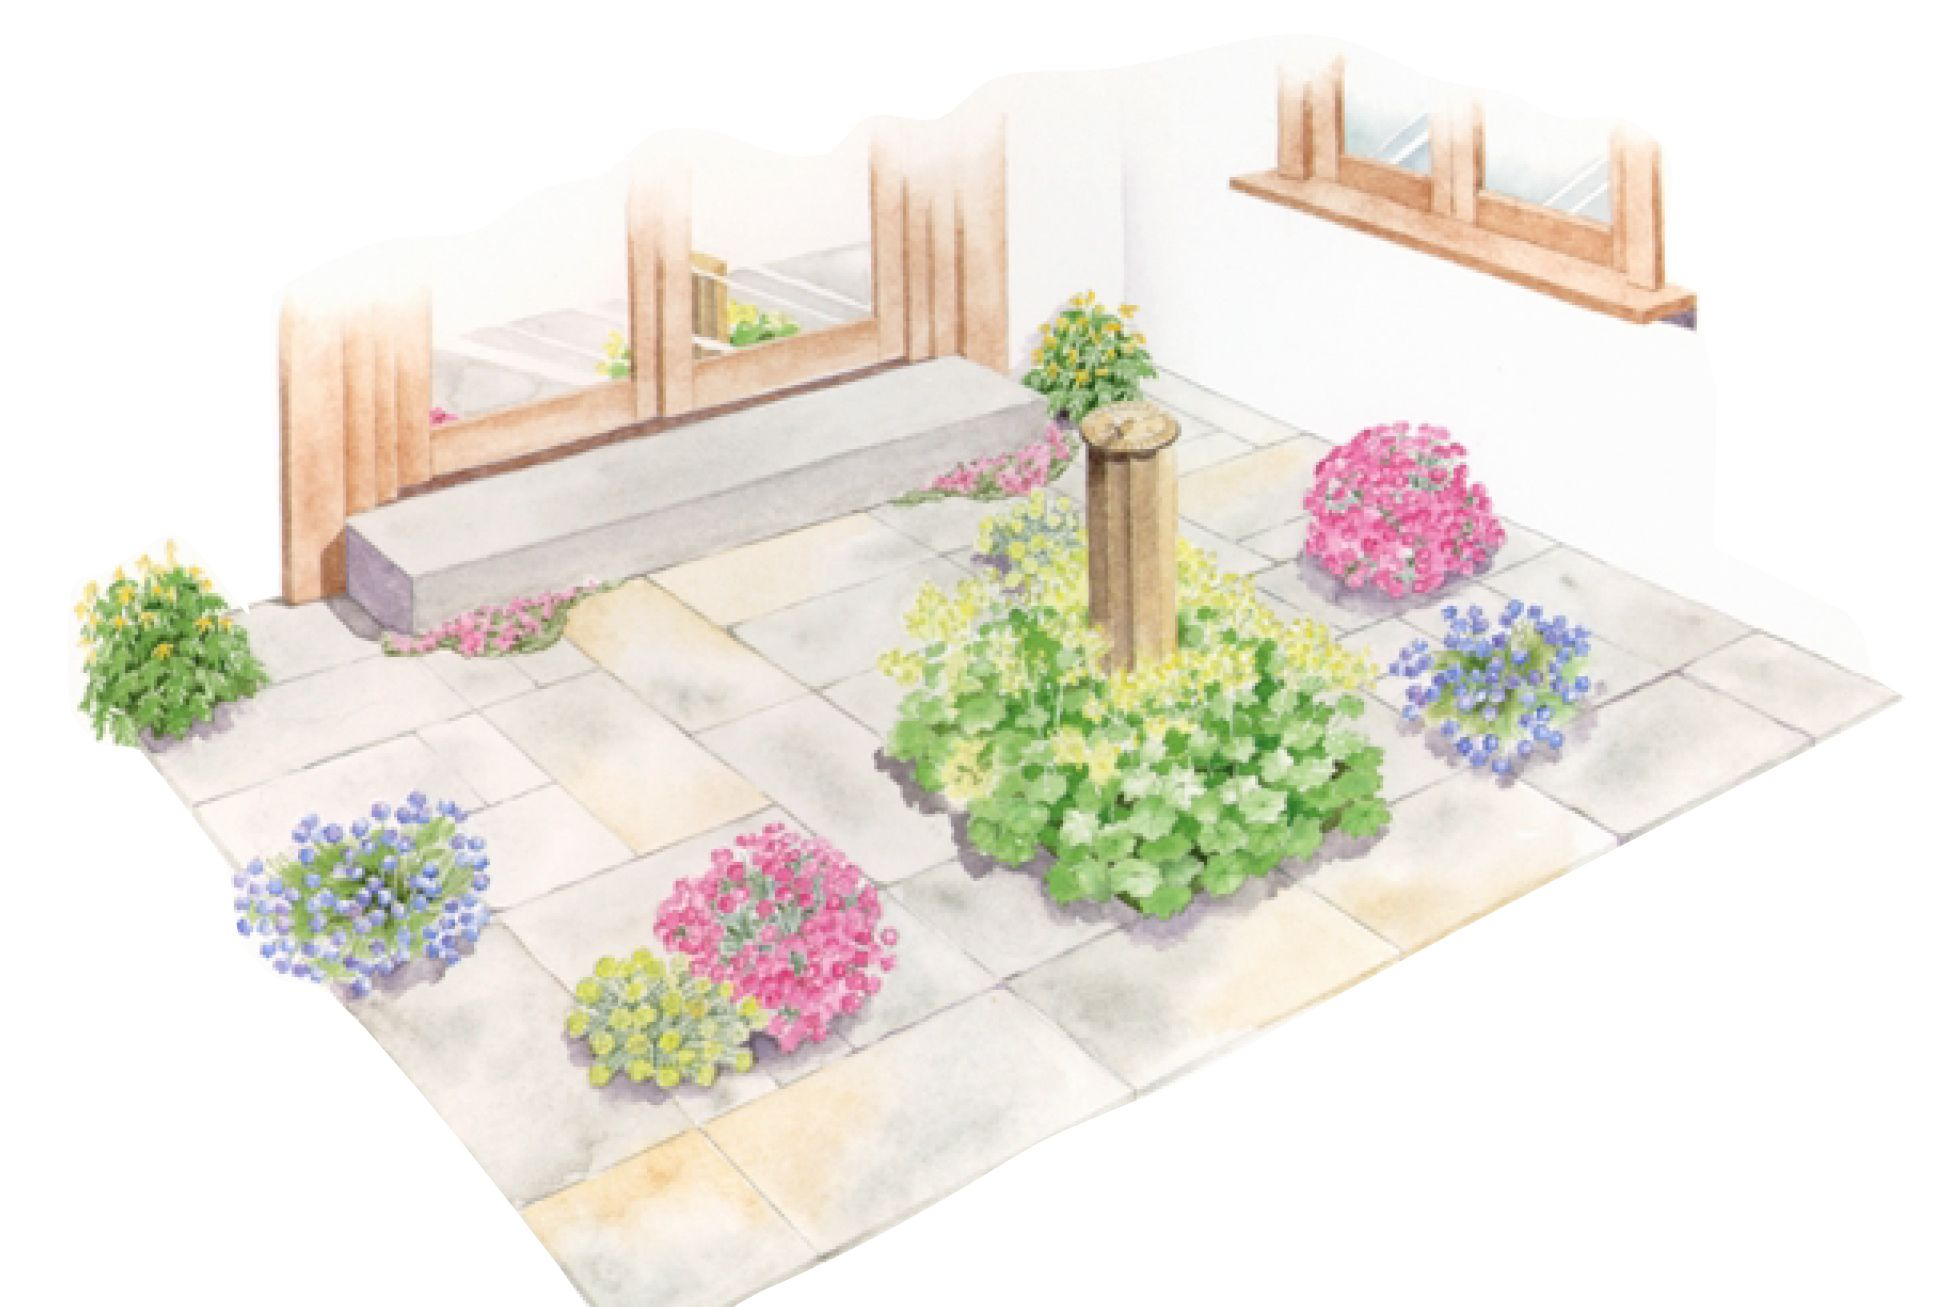 12 Free Garden Design Ideas and Plans - Best Garden Layouts